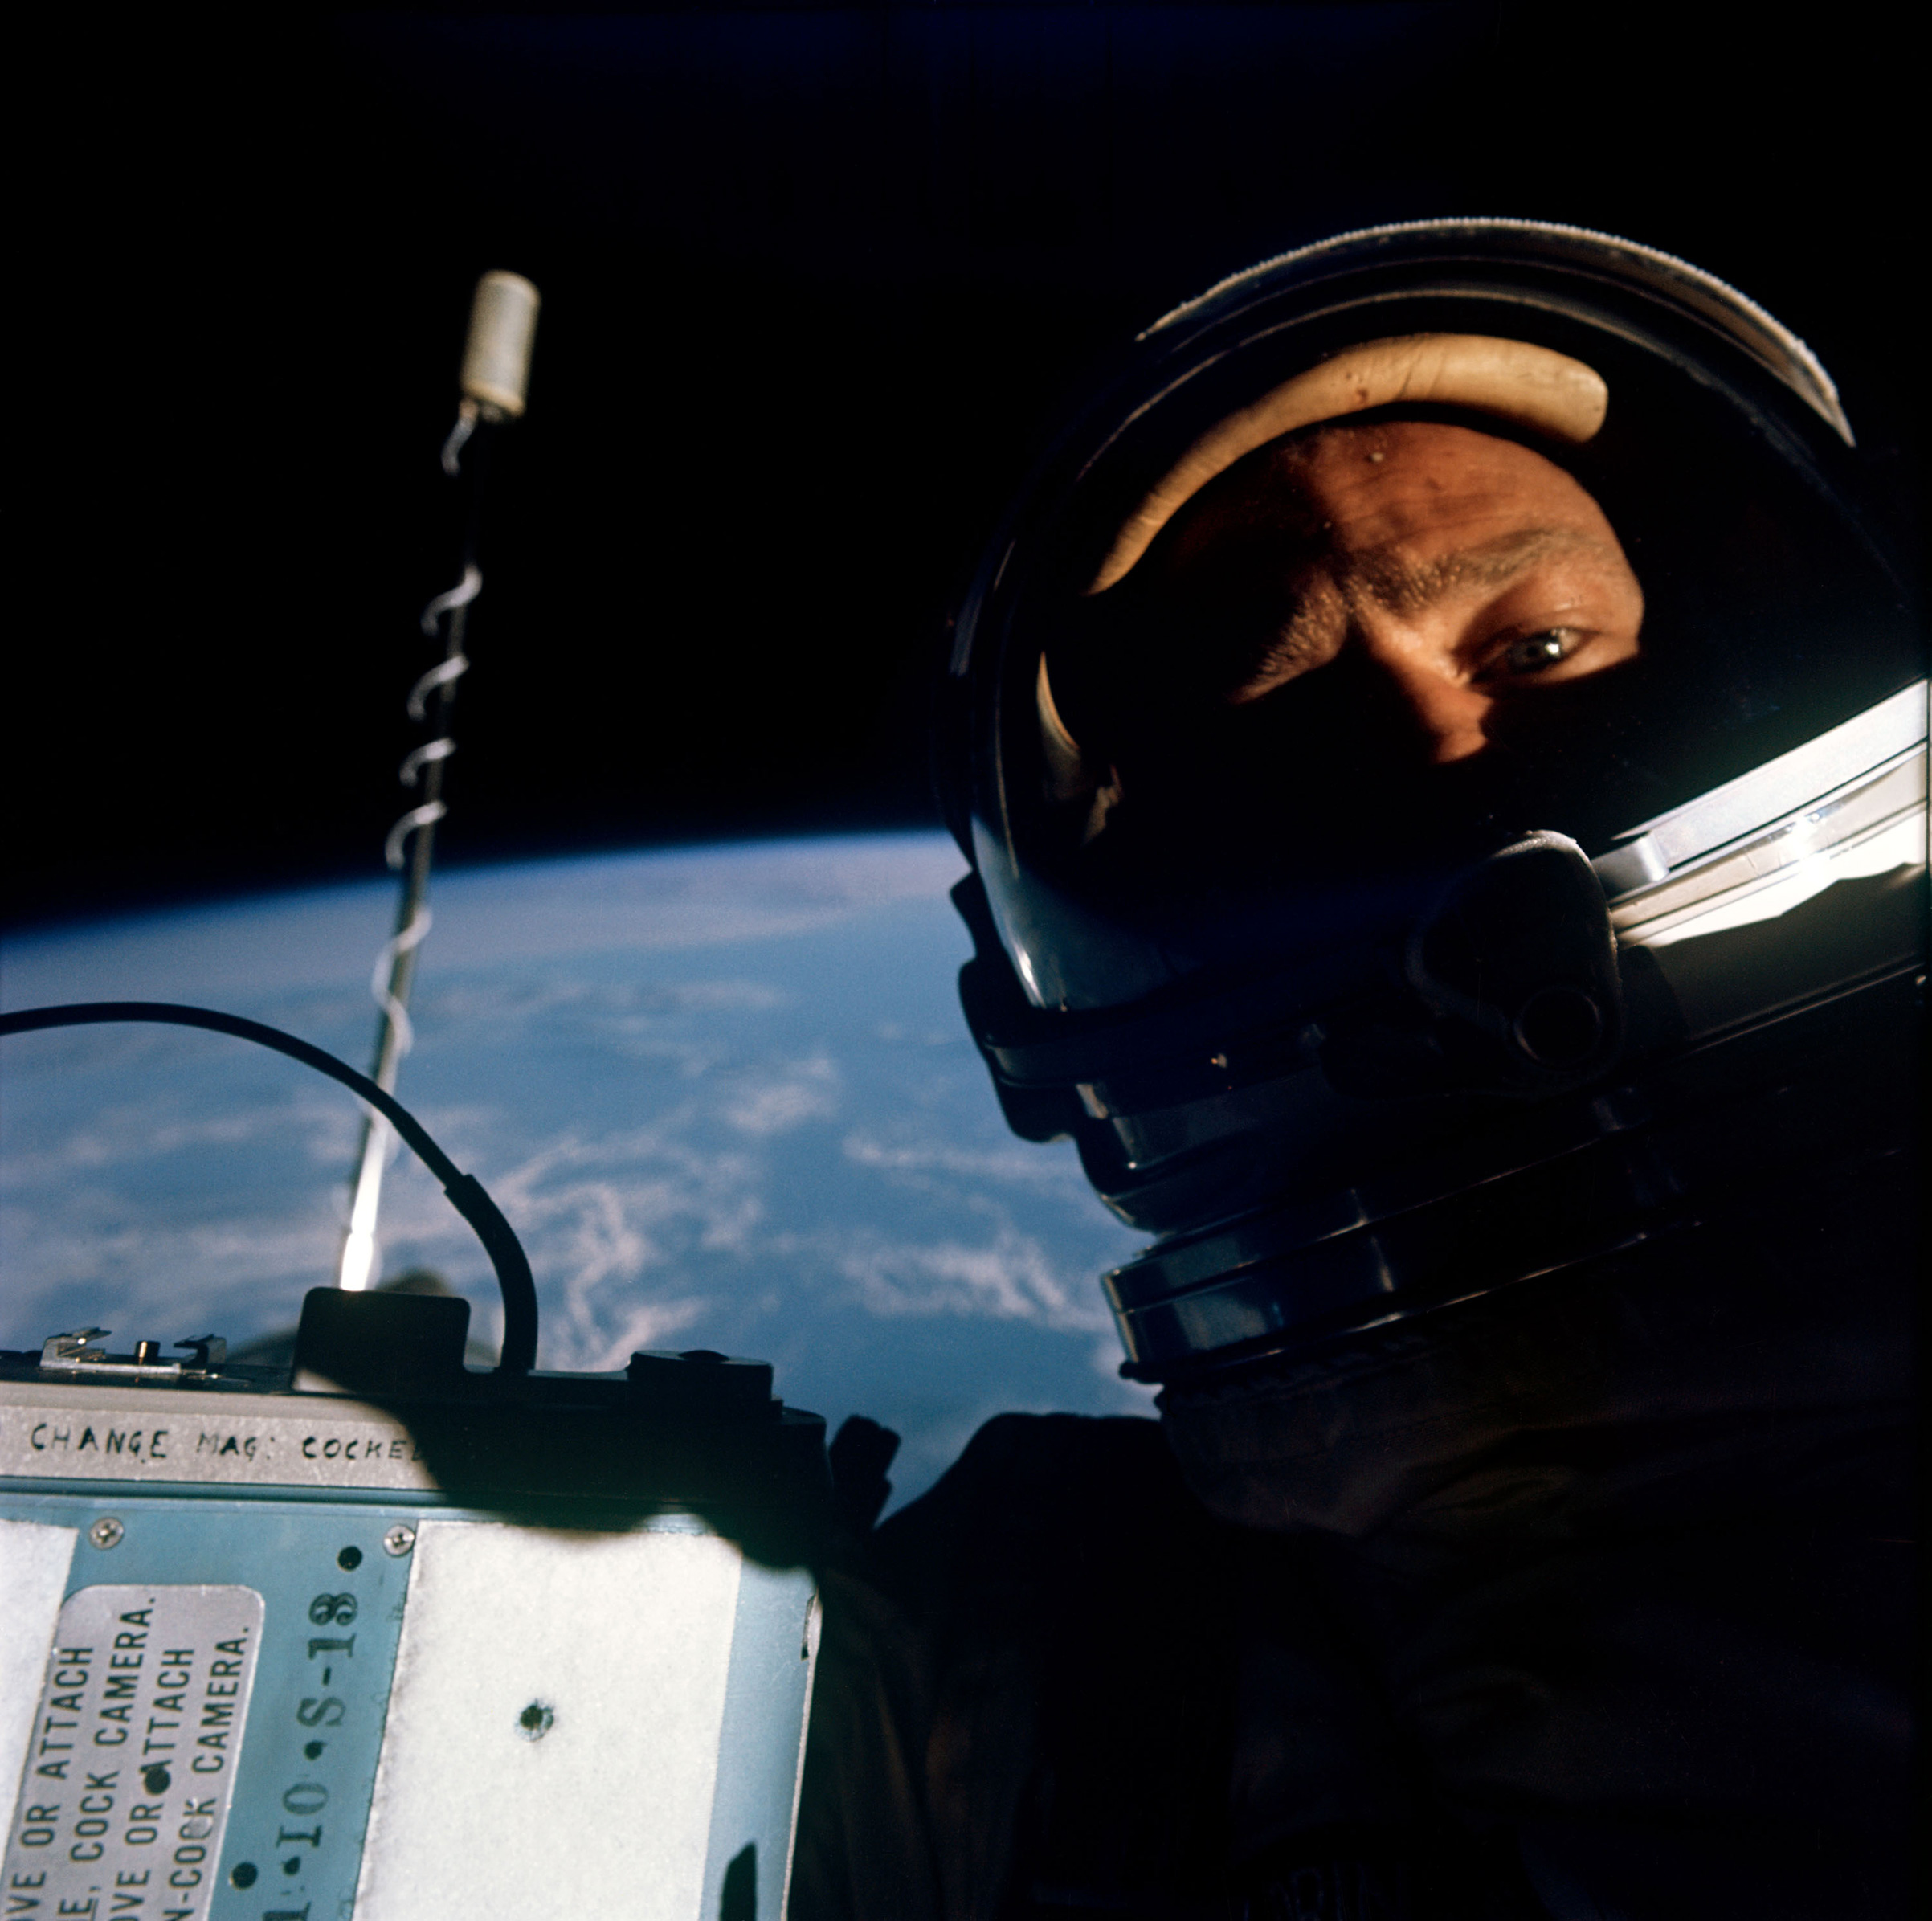 Buzz Aldrin space selfie during his Gemini 12 mission in 1966.